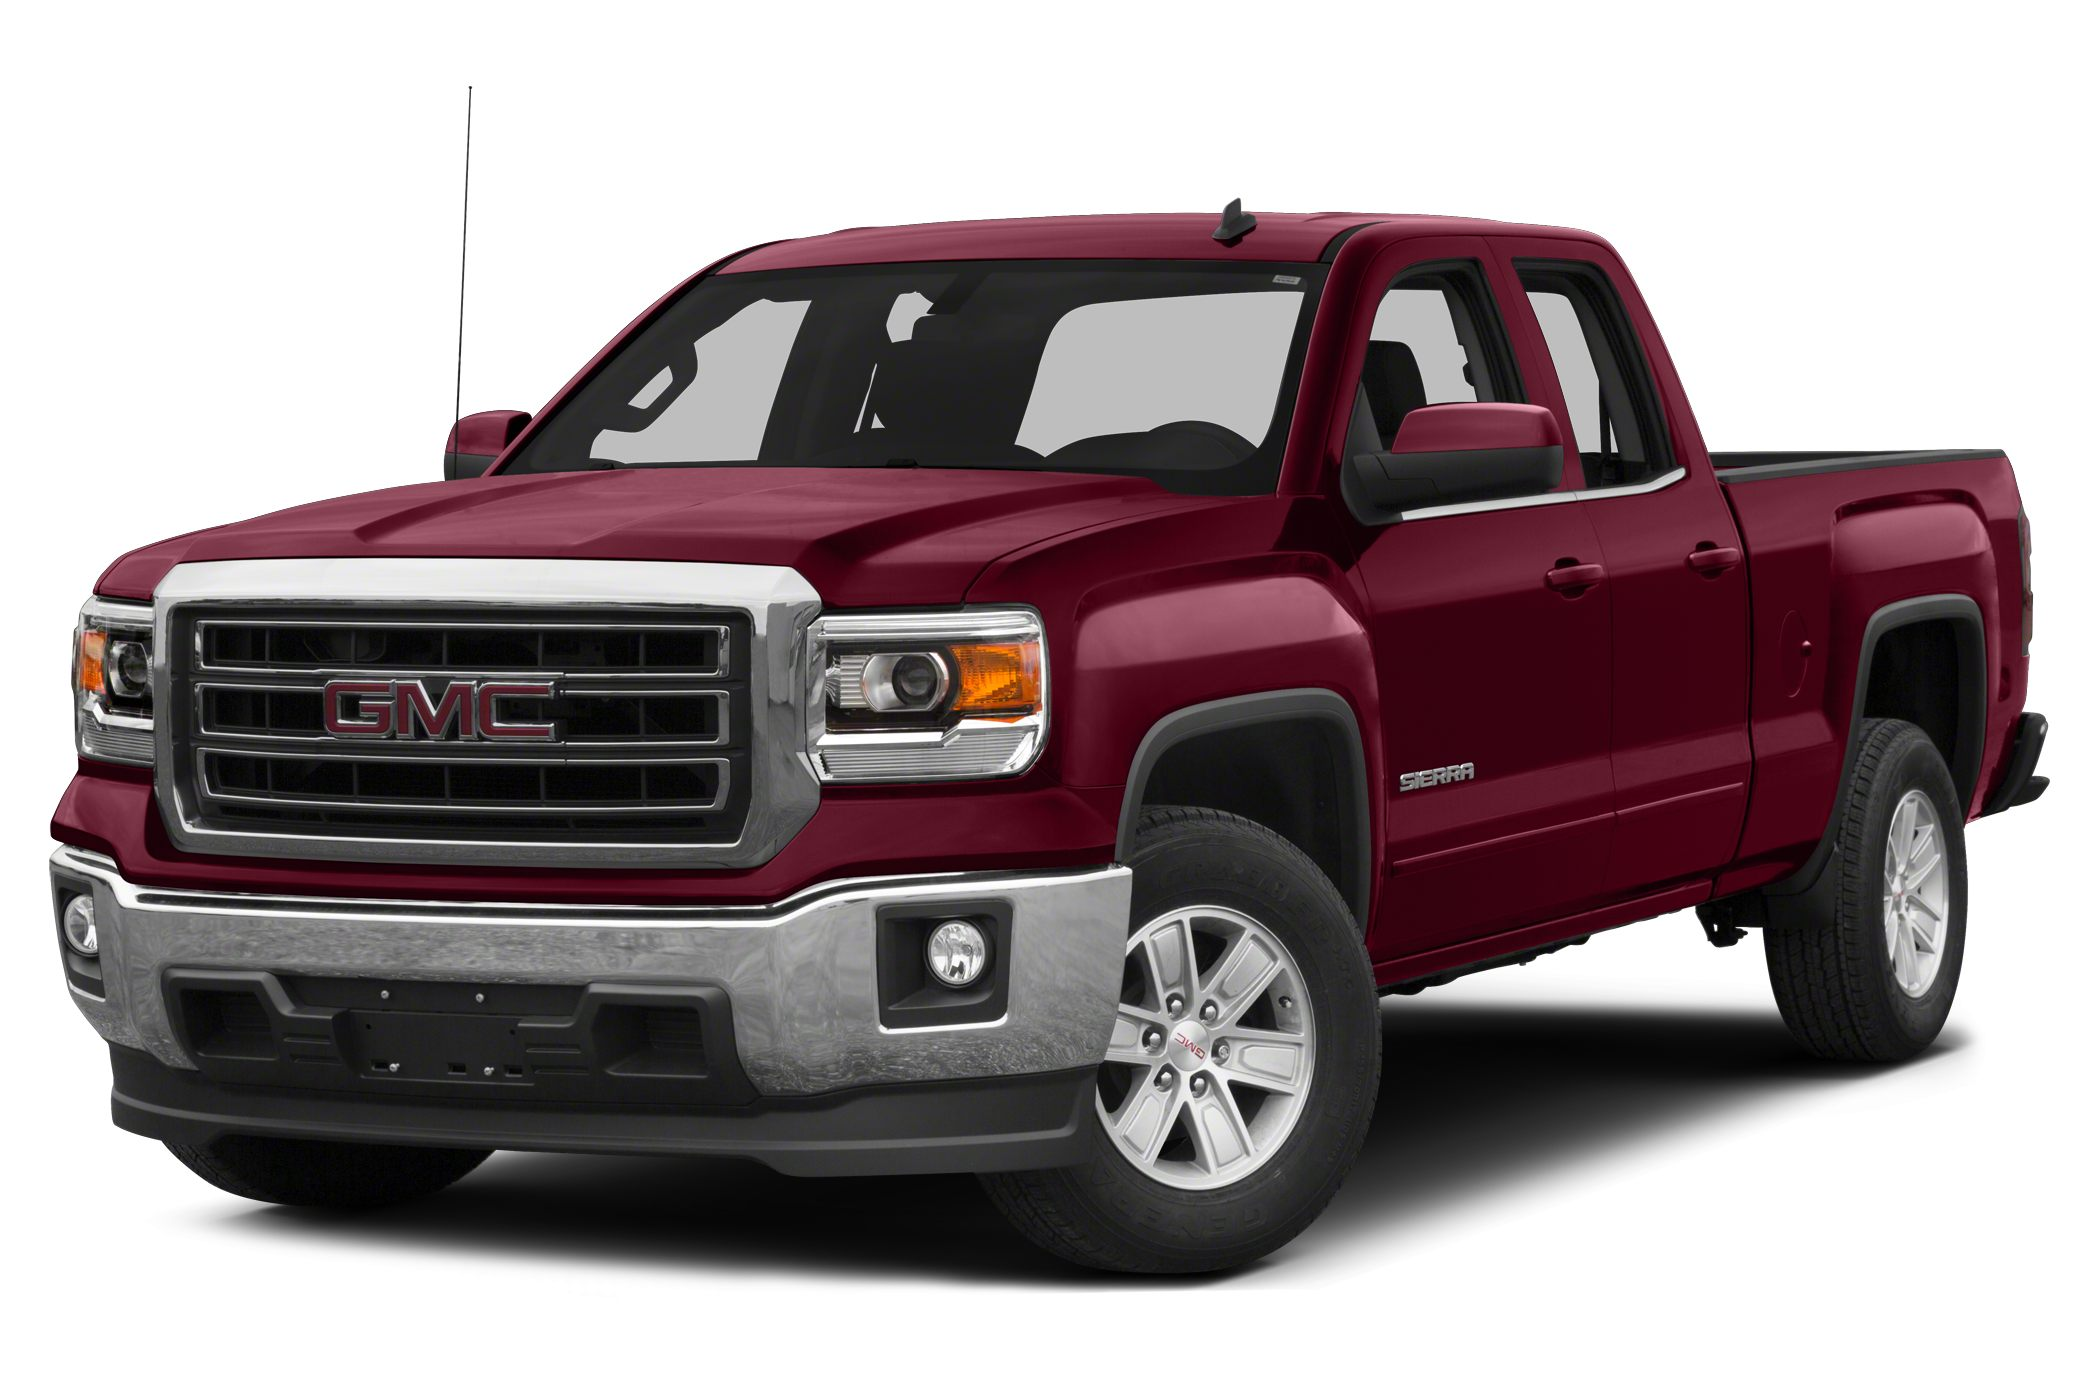 2015 GMC Sierra 1500 SLT Crew Cab Pickup for sale in Keene for $49,775 with 121 miles.